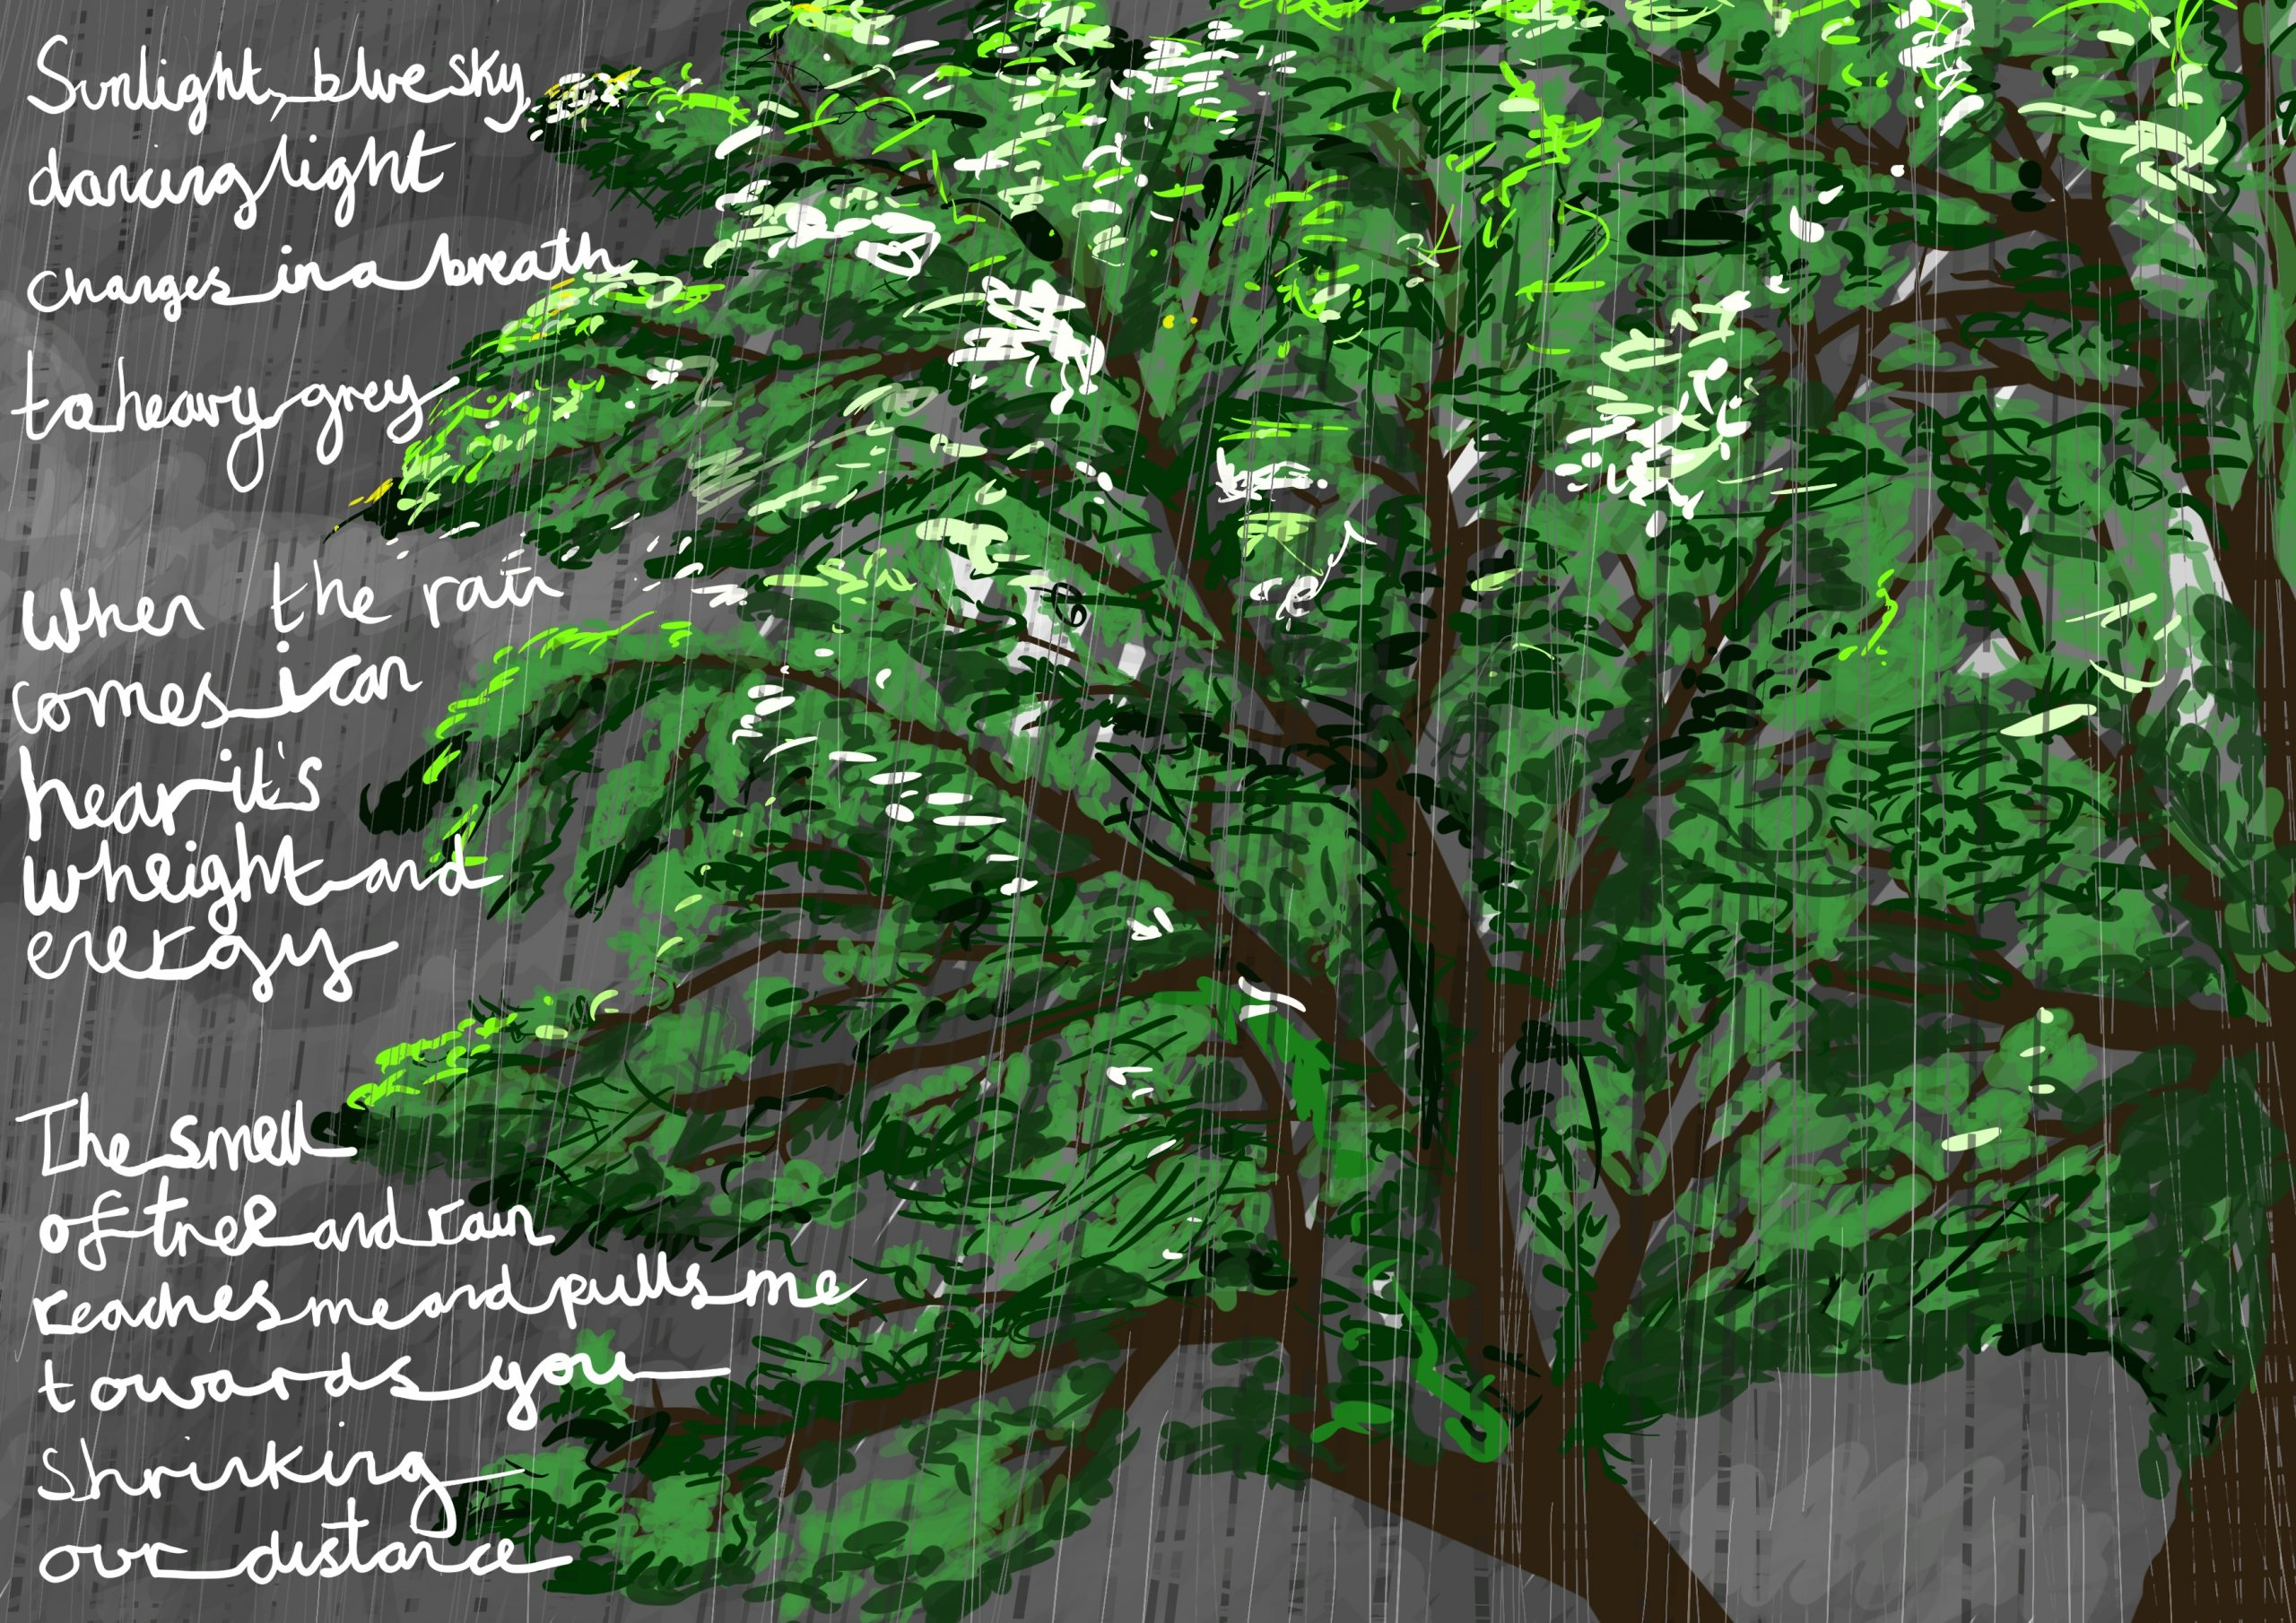 "Image shows a digital drawing by Touretteshero of one of the sycamore trees she can see from her bedroom window. The sycamore tree is a lush early summer green on a stormy evening. The sky is grey and thick with rain. It is raining heavily with the following accompanying text: ""Sunlight, blue sky, dancing shadows, it all changes in a breath to heavy grey. When the rain comes, I can hear its weight and energy. The smell of tree and rain reaches me and pulls me towards you, shrinking our distance apart."""